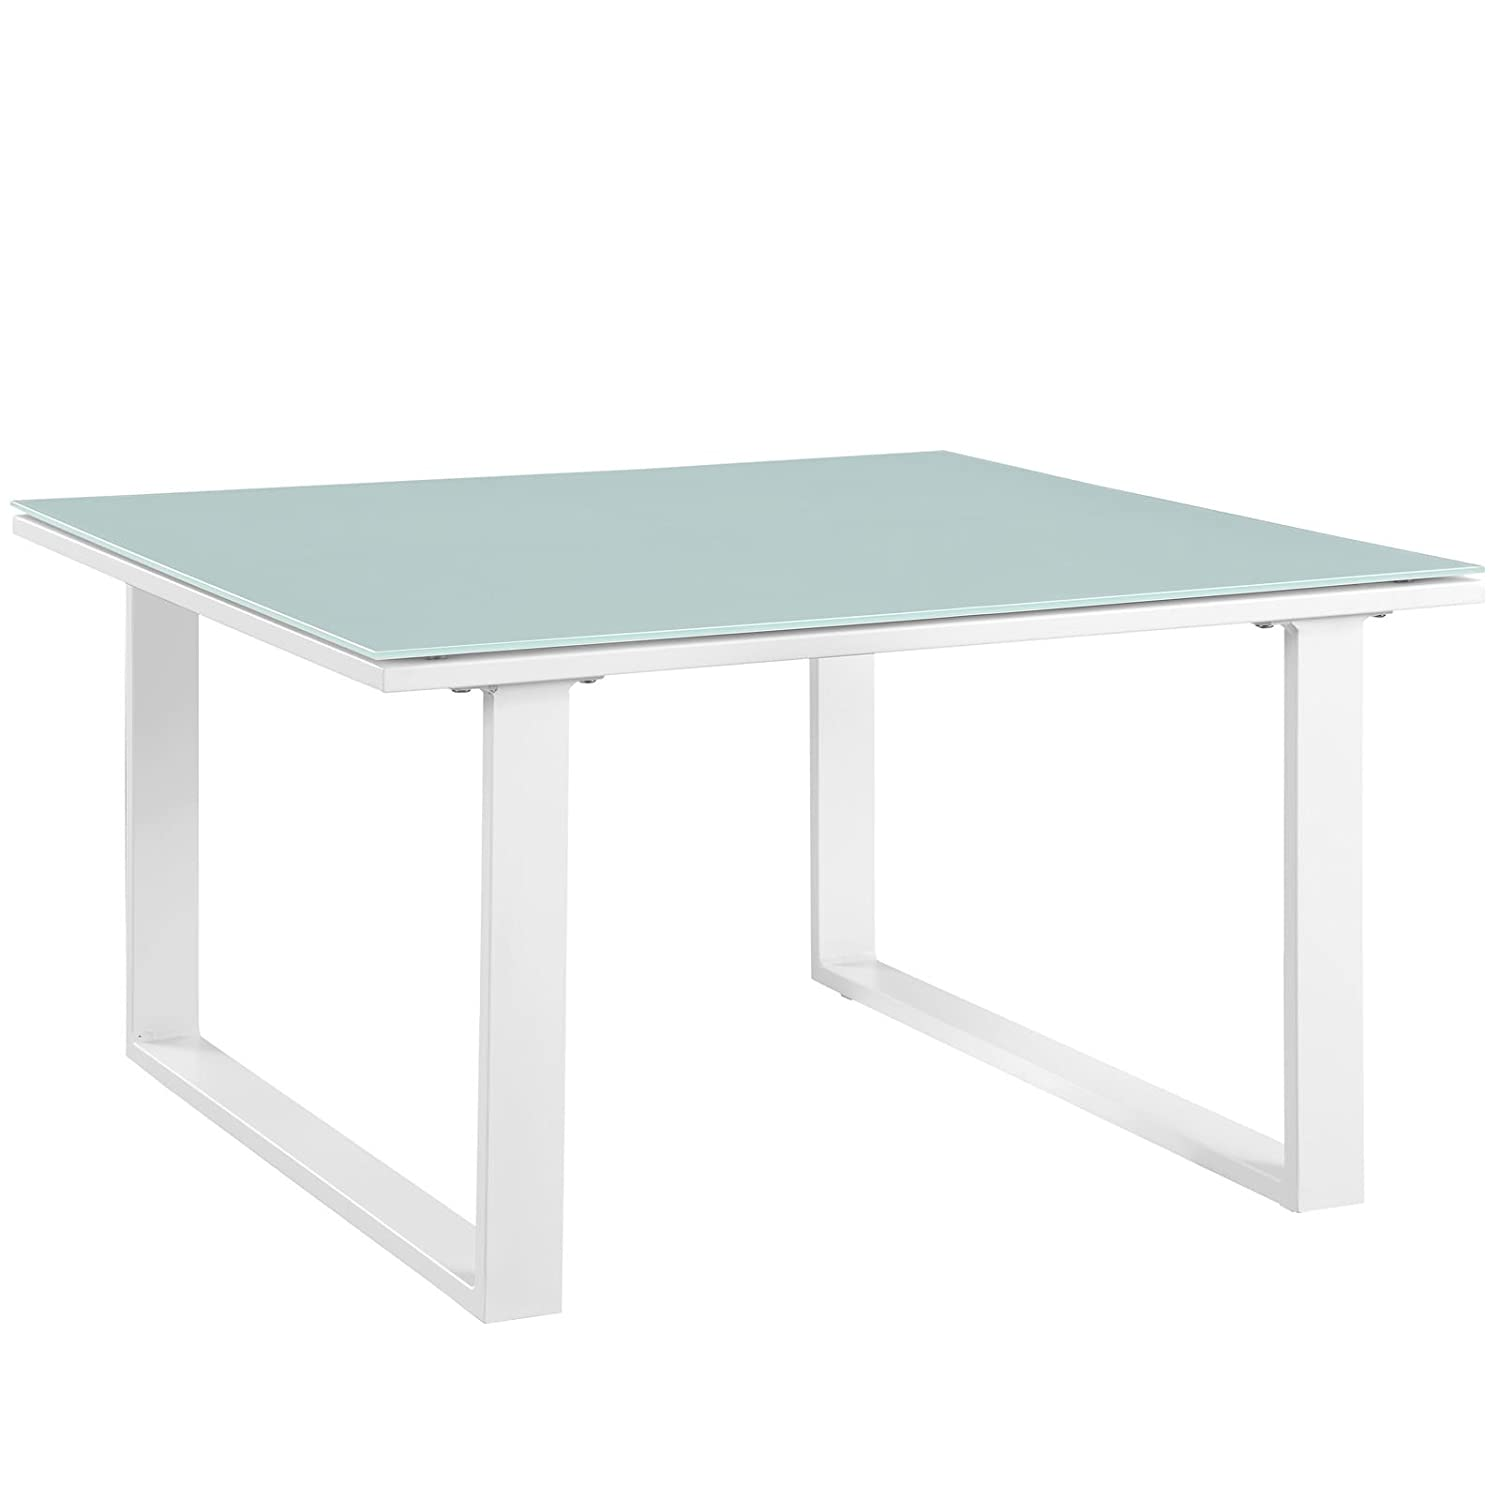 Modway Fortuna Aluminum Outdoor Patio Side Table in White